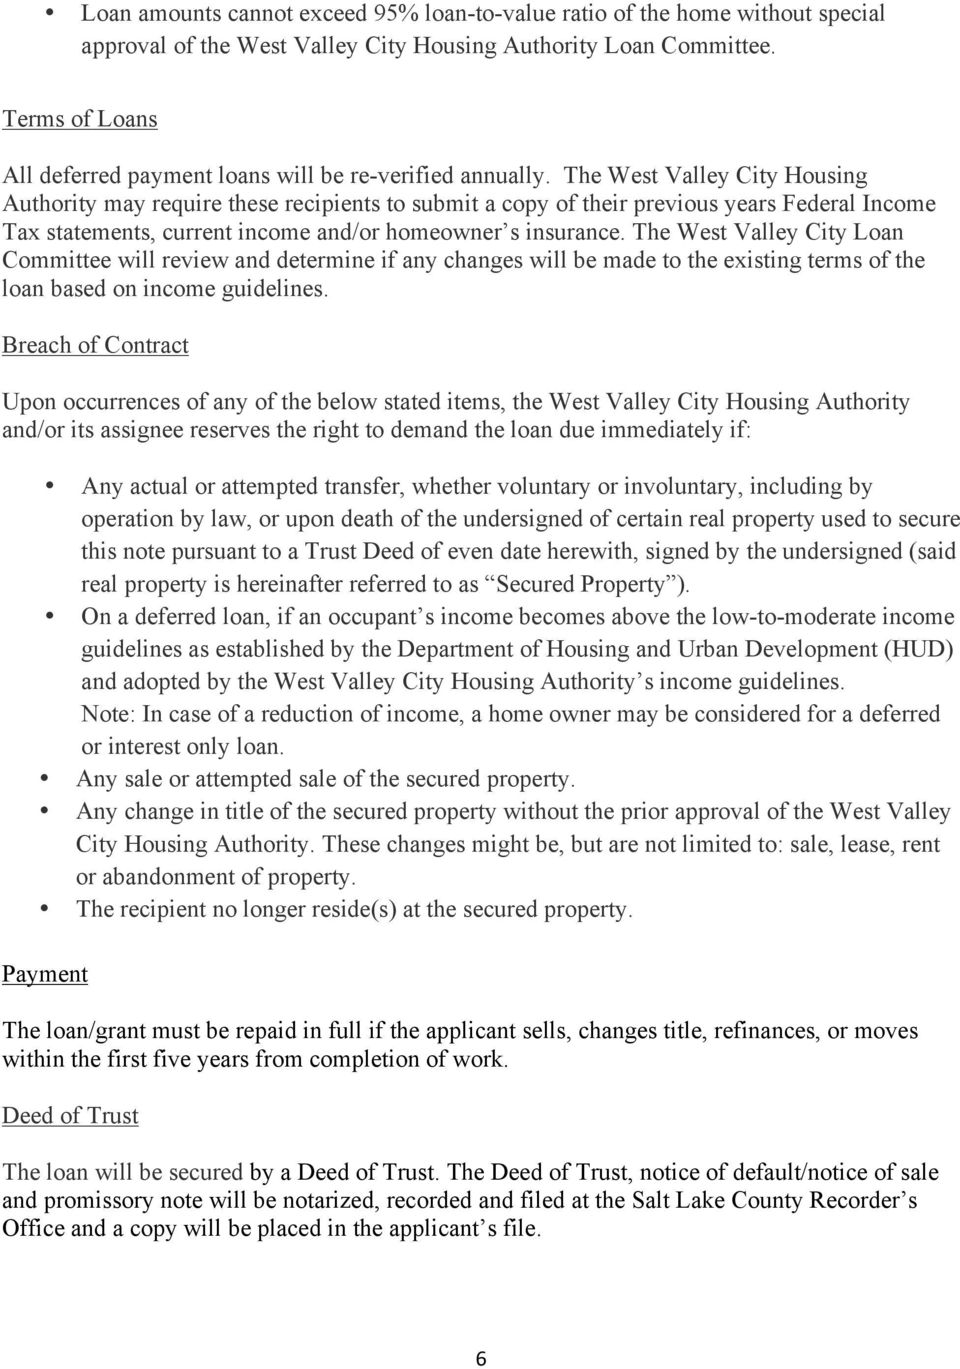 The West Valley City Housing Authority may require these recipients to submit a copy of their previous years Federal Income Tax statements, current income and/or homeowner s insurance.